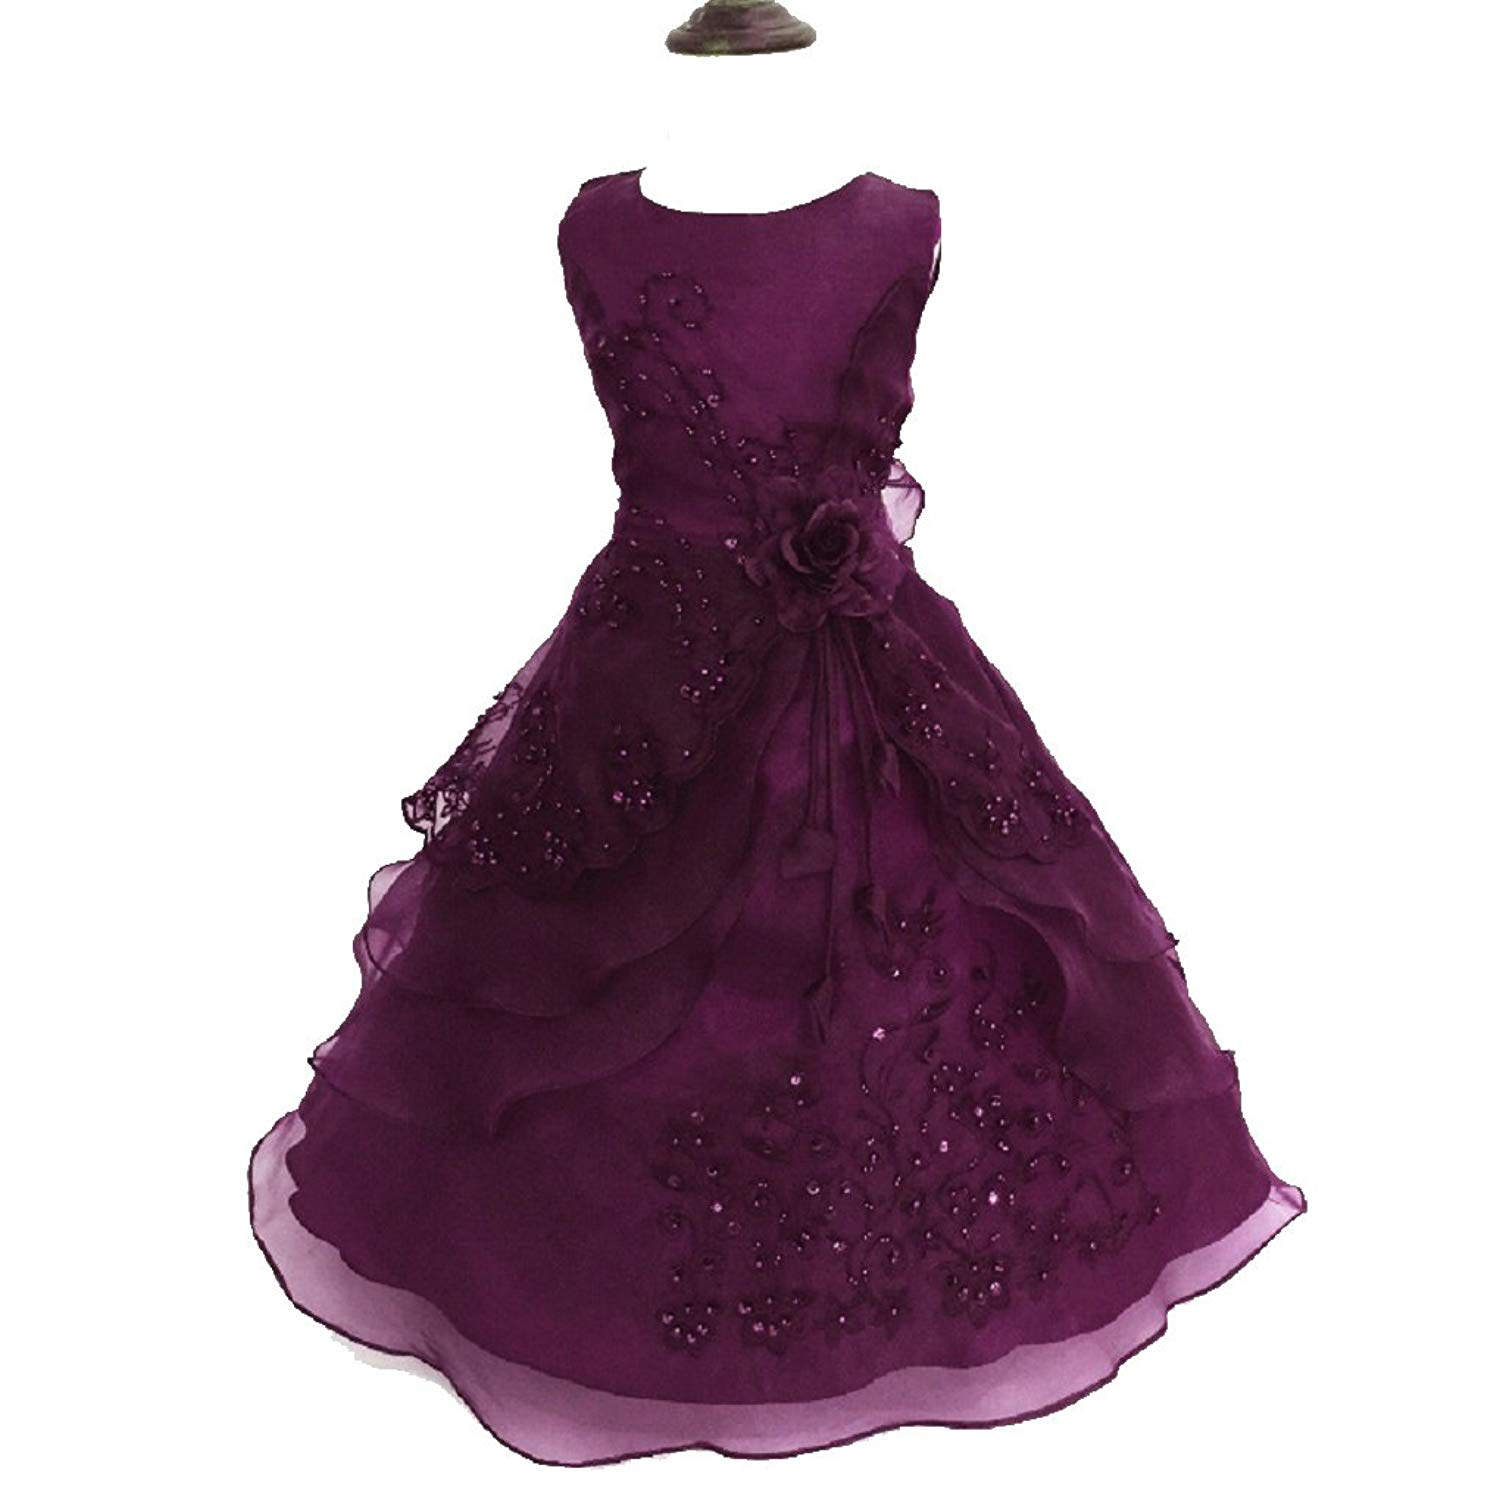 ee8a7a81eaba Little Big Girls Embroidered Beaded Flower Girl Birthday Party Dress with  Petticoat